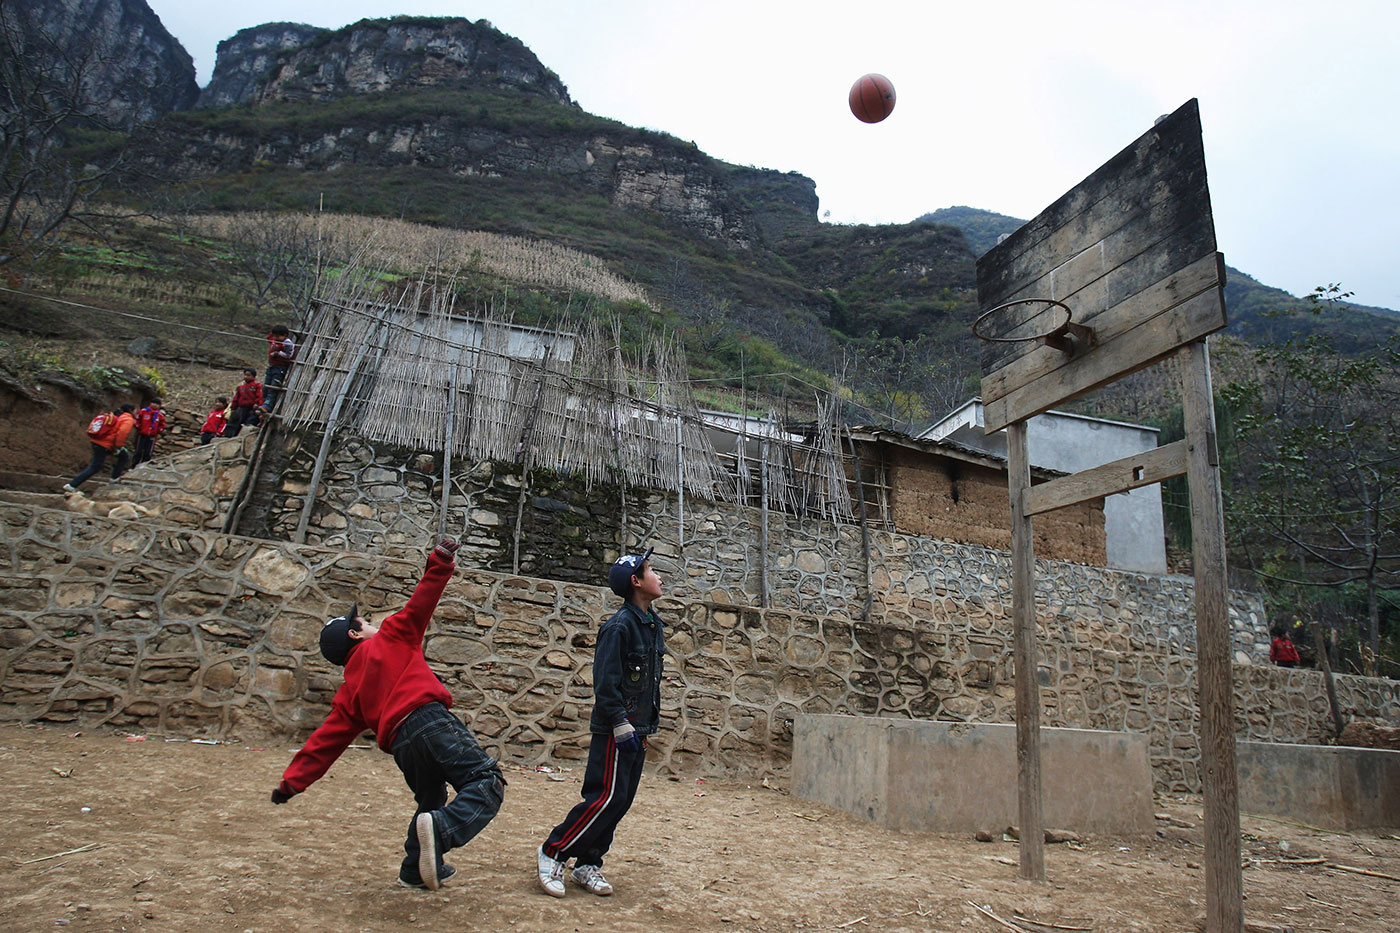 Kids play basketball in a village in the Sichuan province of China